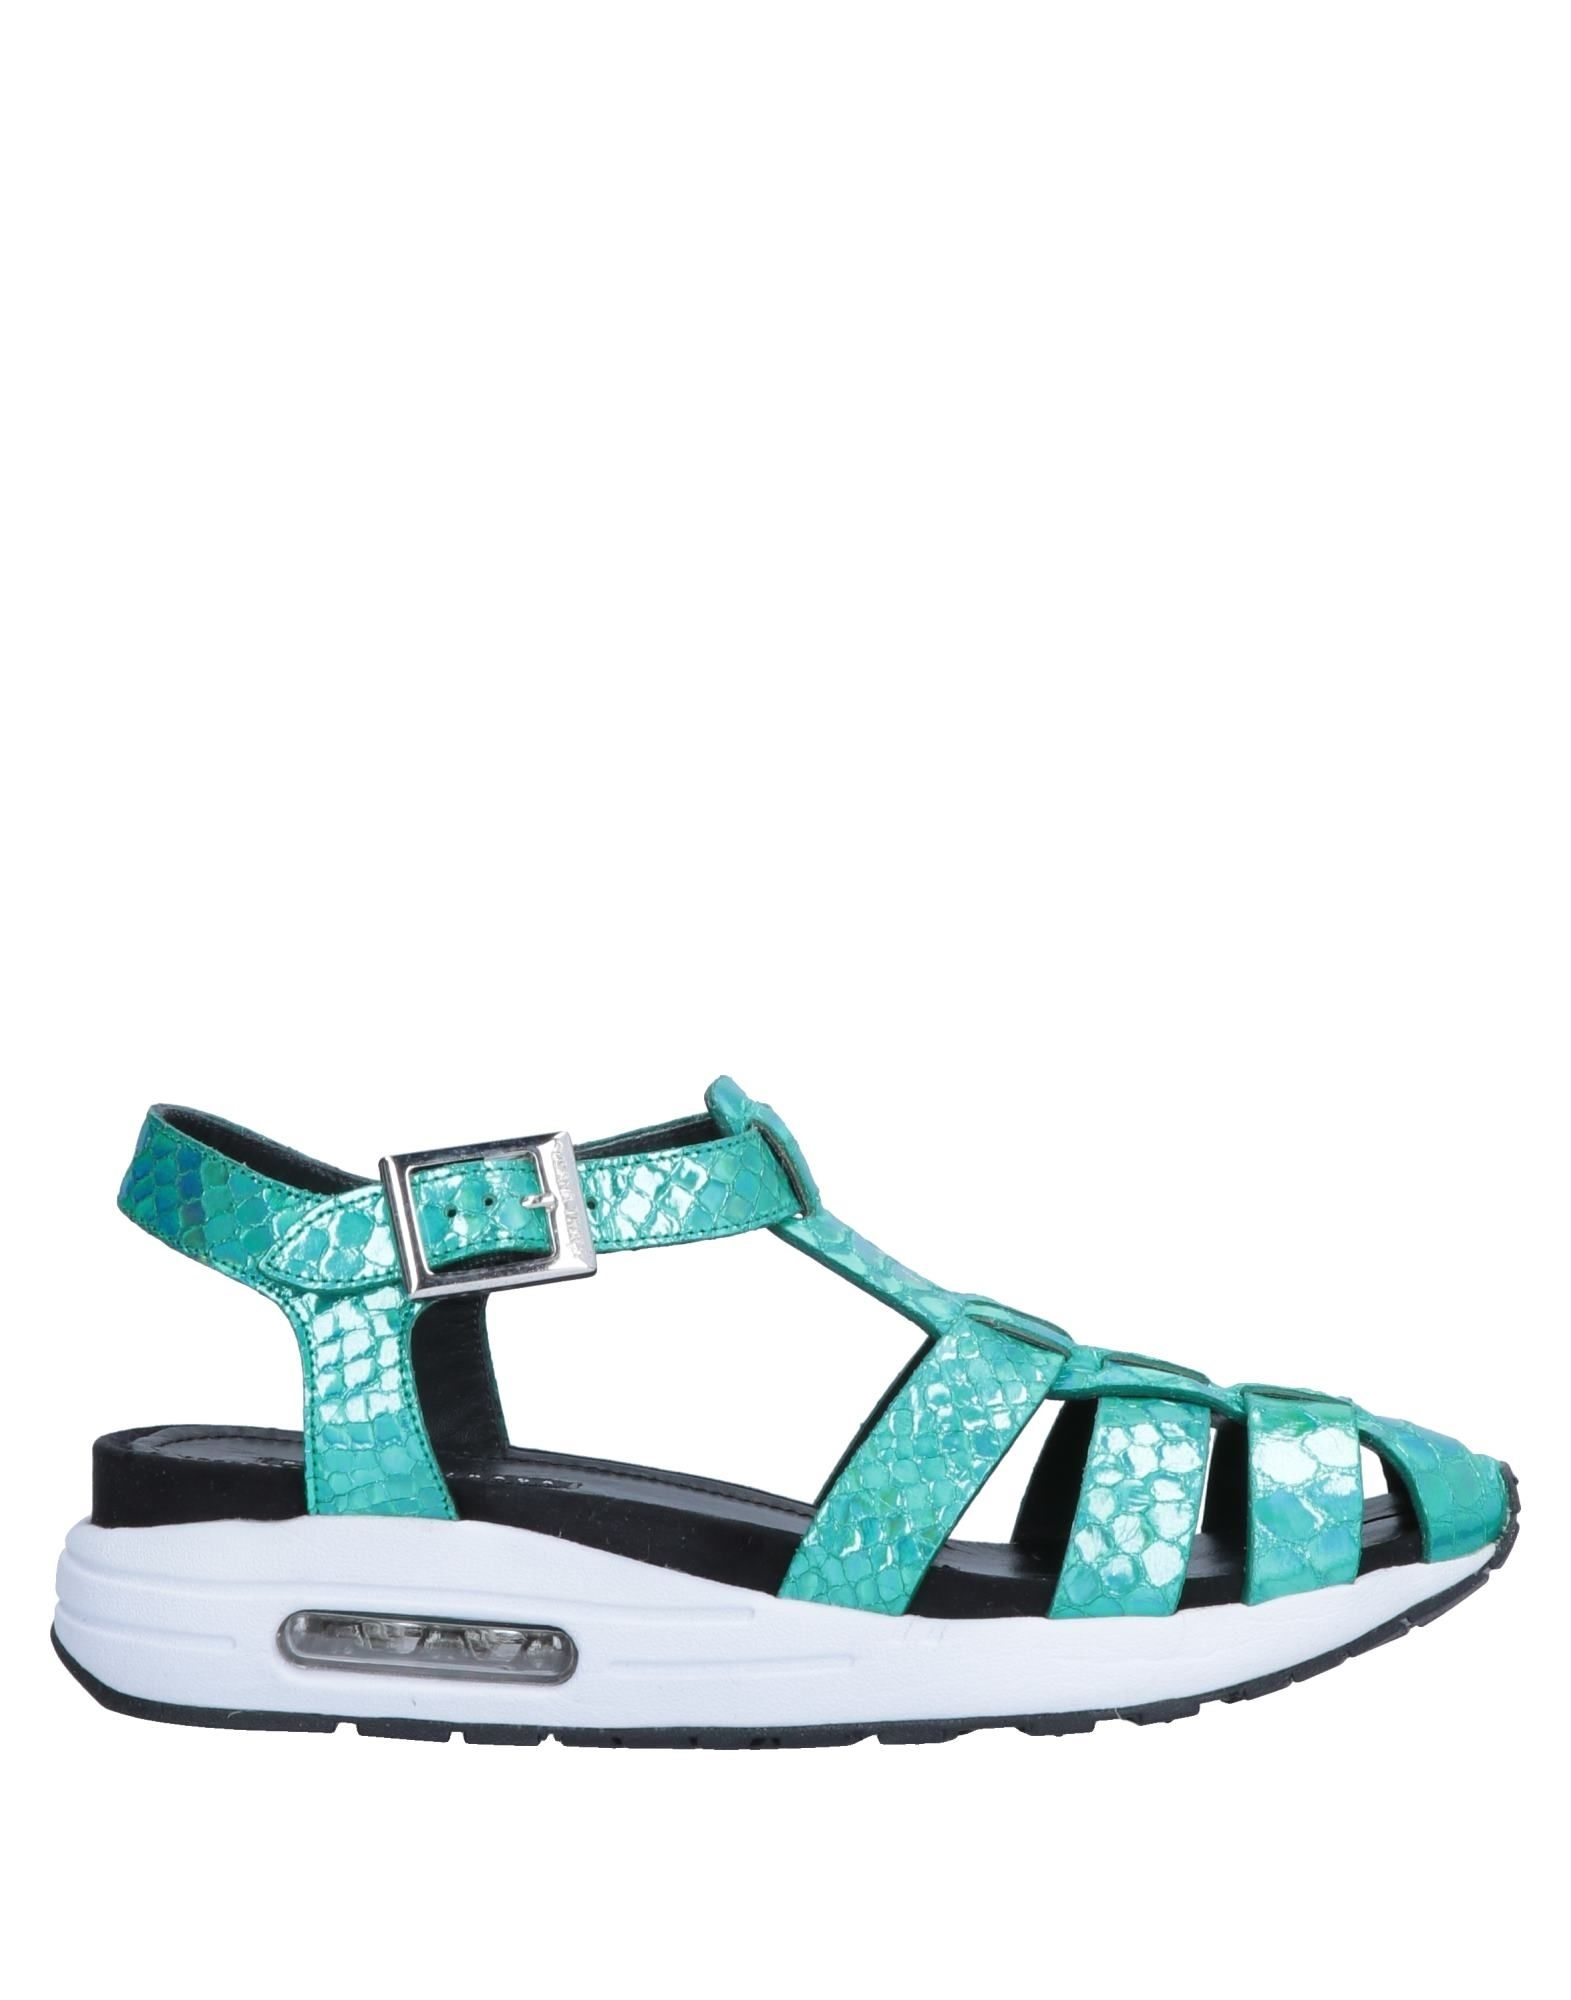 Susana Traca Sandals - Women Susana Traca Sandals - online on  Australia - Sandals 11550346JE 20f69d